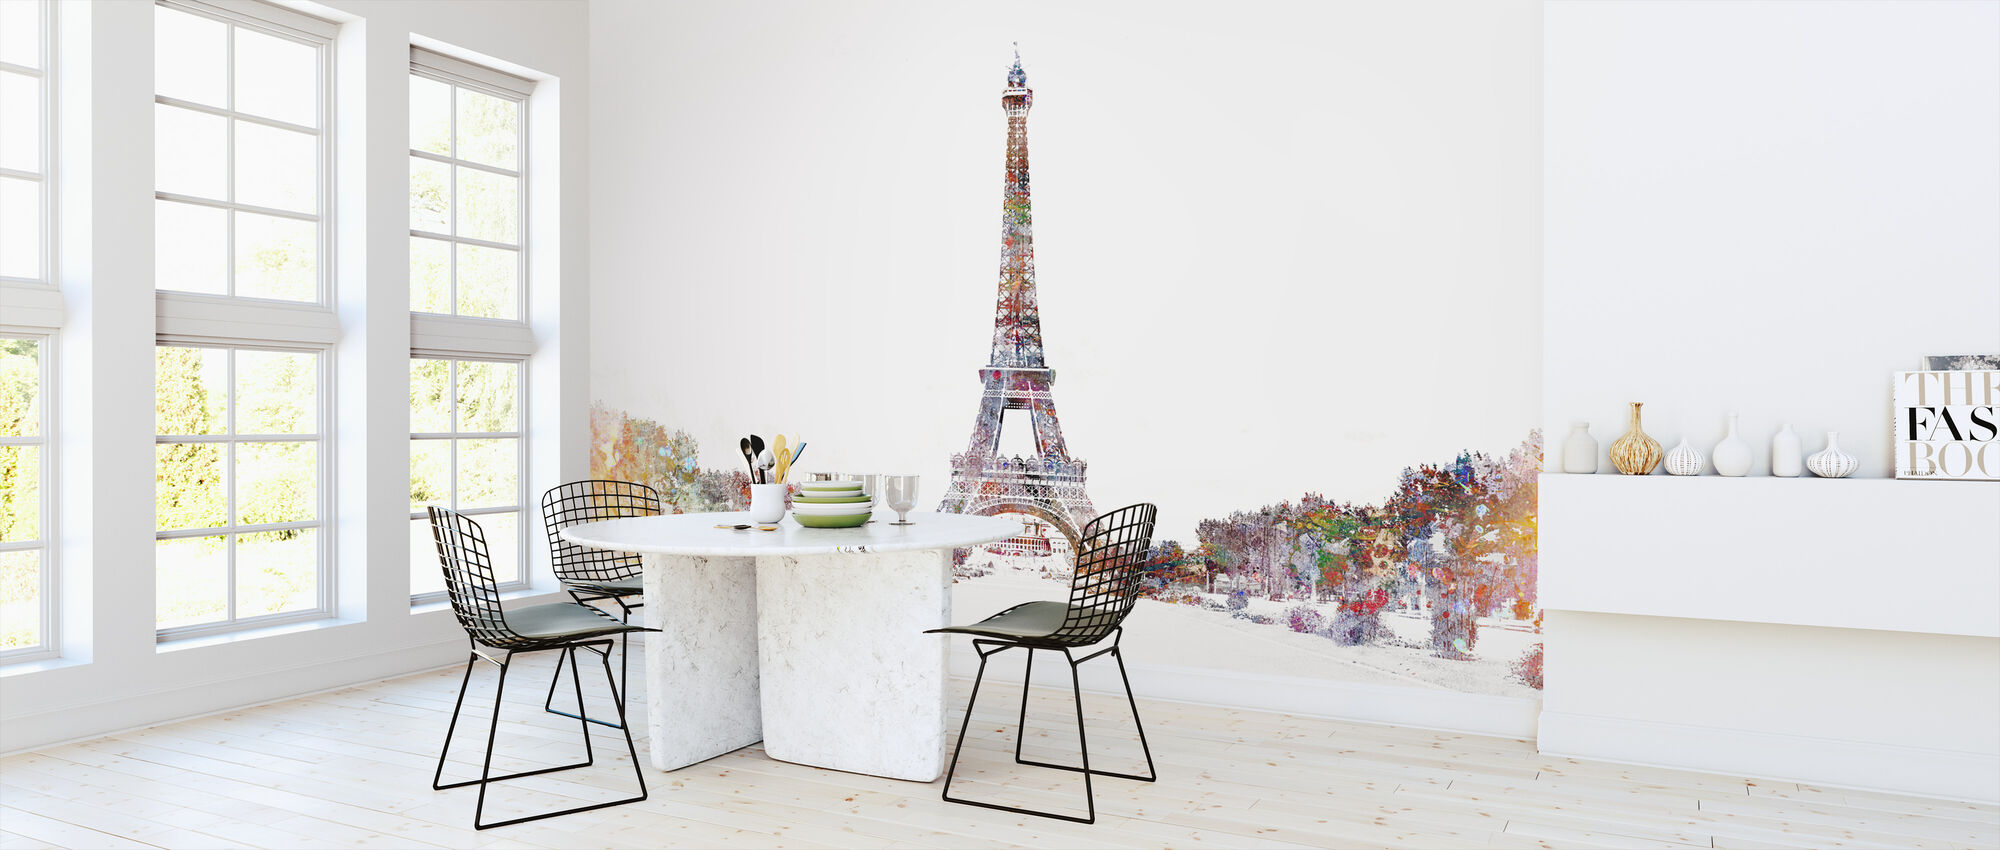 Eiffel Tower Color Splash - Wallpaper - Kitchen